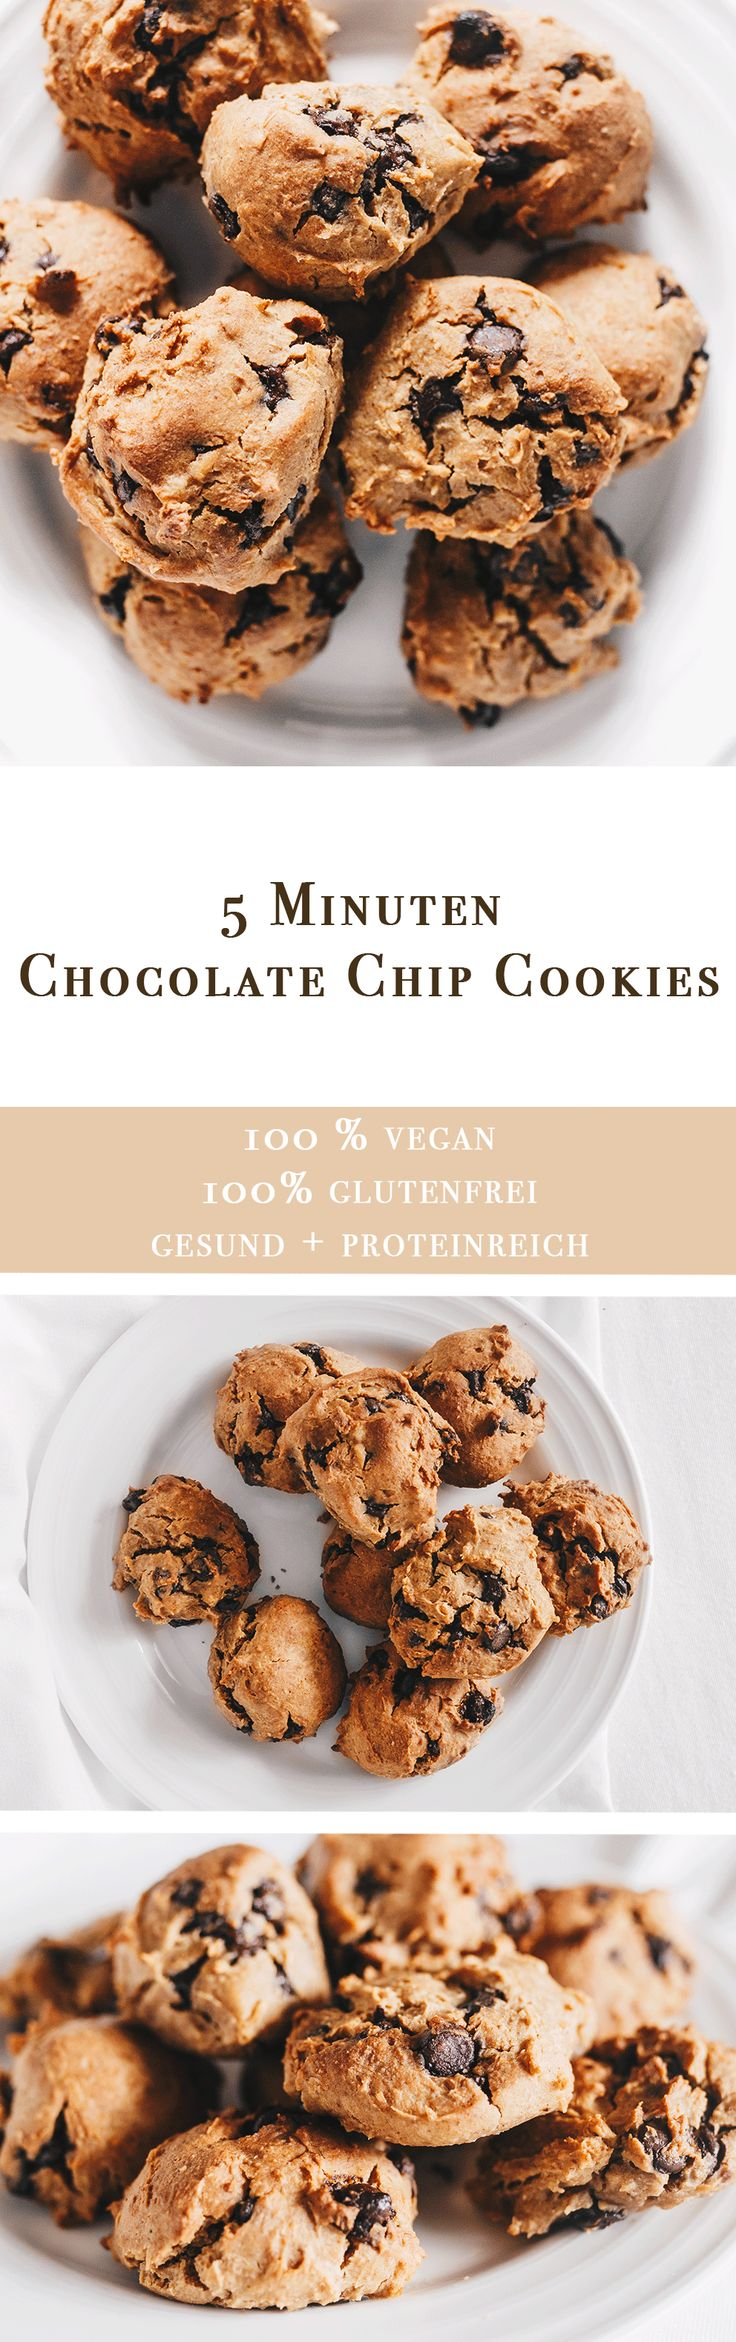 Vanillaholica | 5 Minuten vegane Chocolate Chip Kekse, glutenfrei und proteinreich | http://www.vanillaholica.com . Veganismus, vegan recipes, vegan lifestyle, animal rights, vegans, vegan food, vegan (Chocolate Chip)